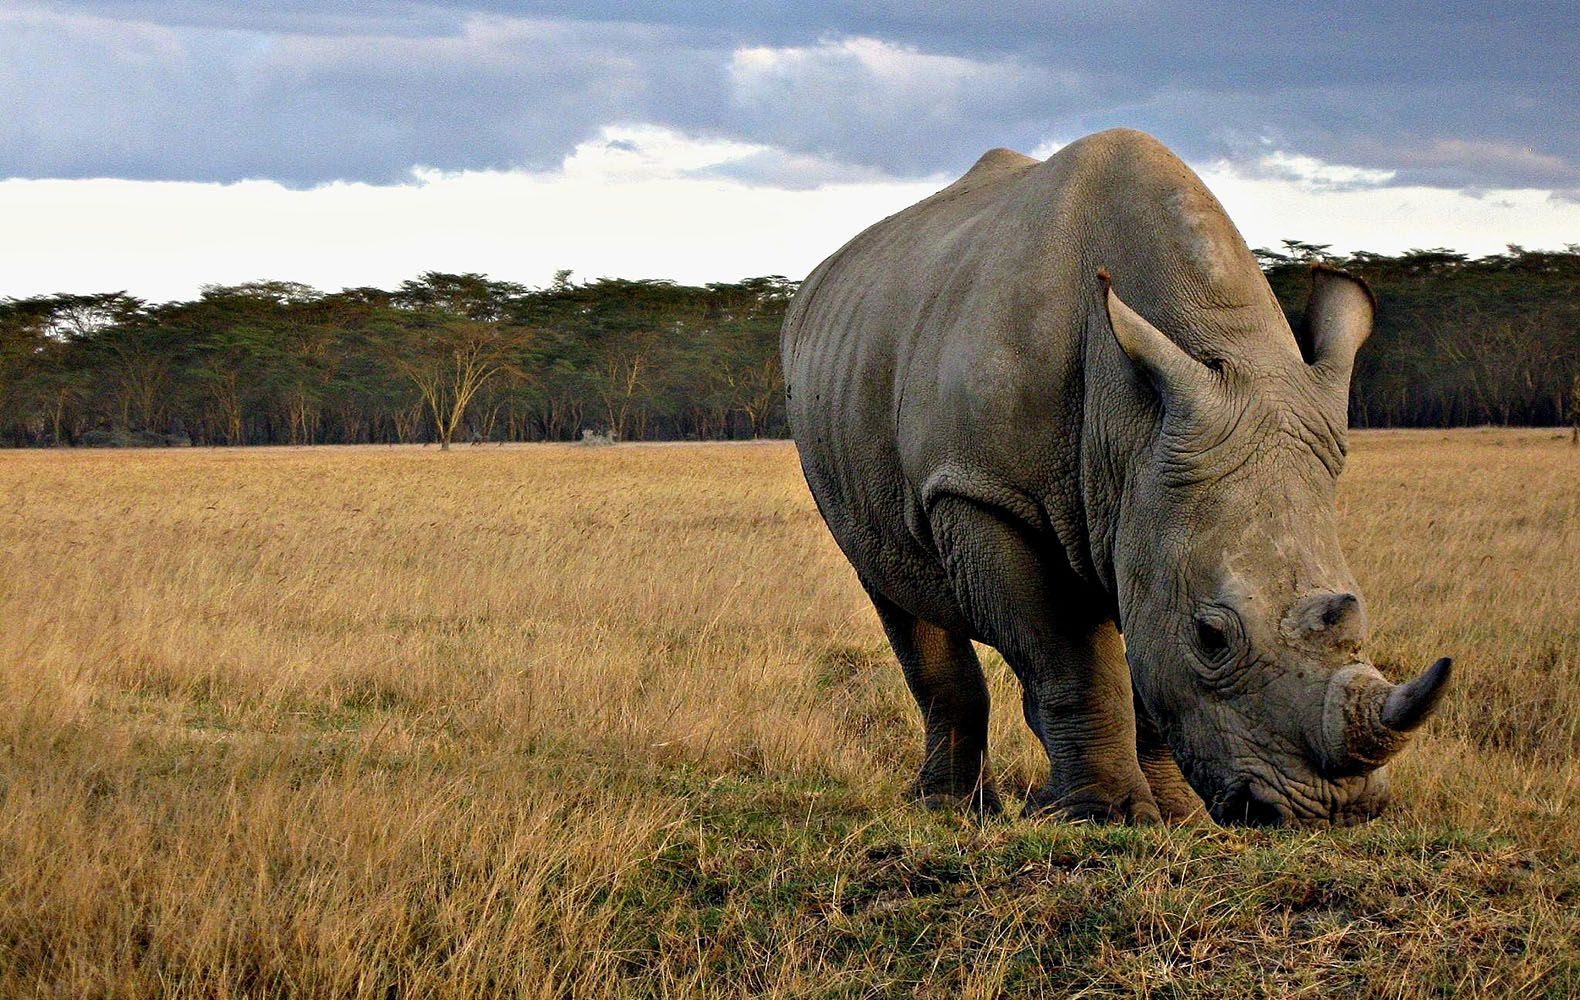 Rhinoceros Animals Photos Free Stock HQ Wallpapers Download